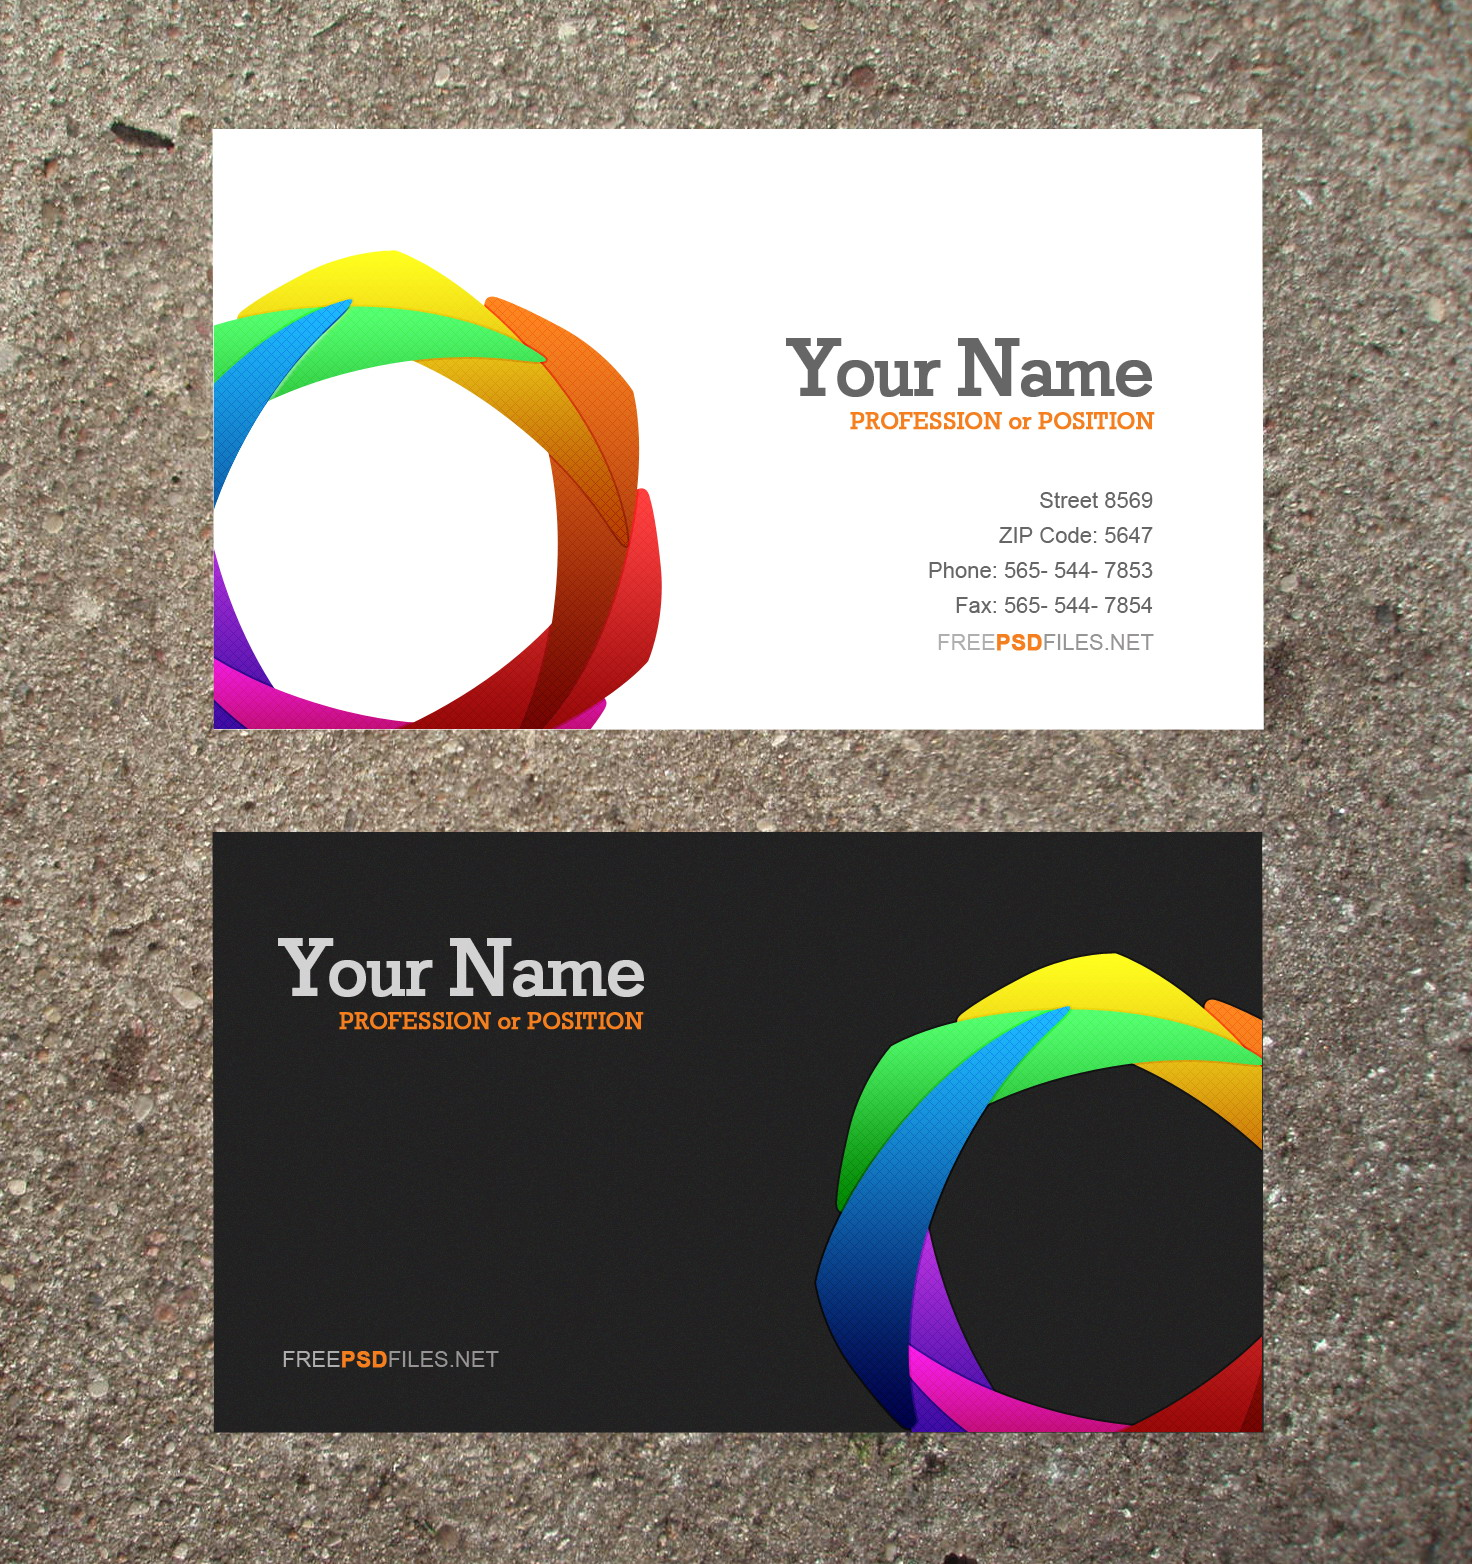 Agriculture business card template jeppefm agriculture business card template reheart Gallery